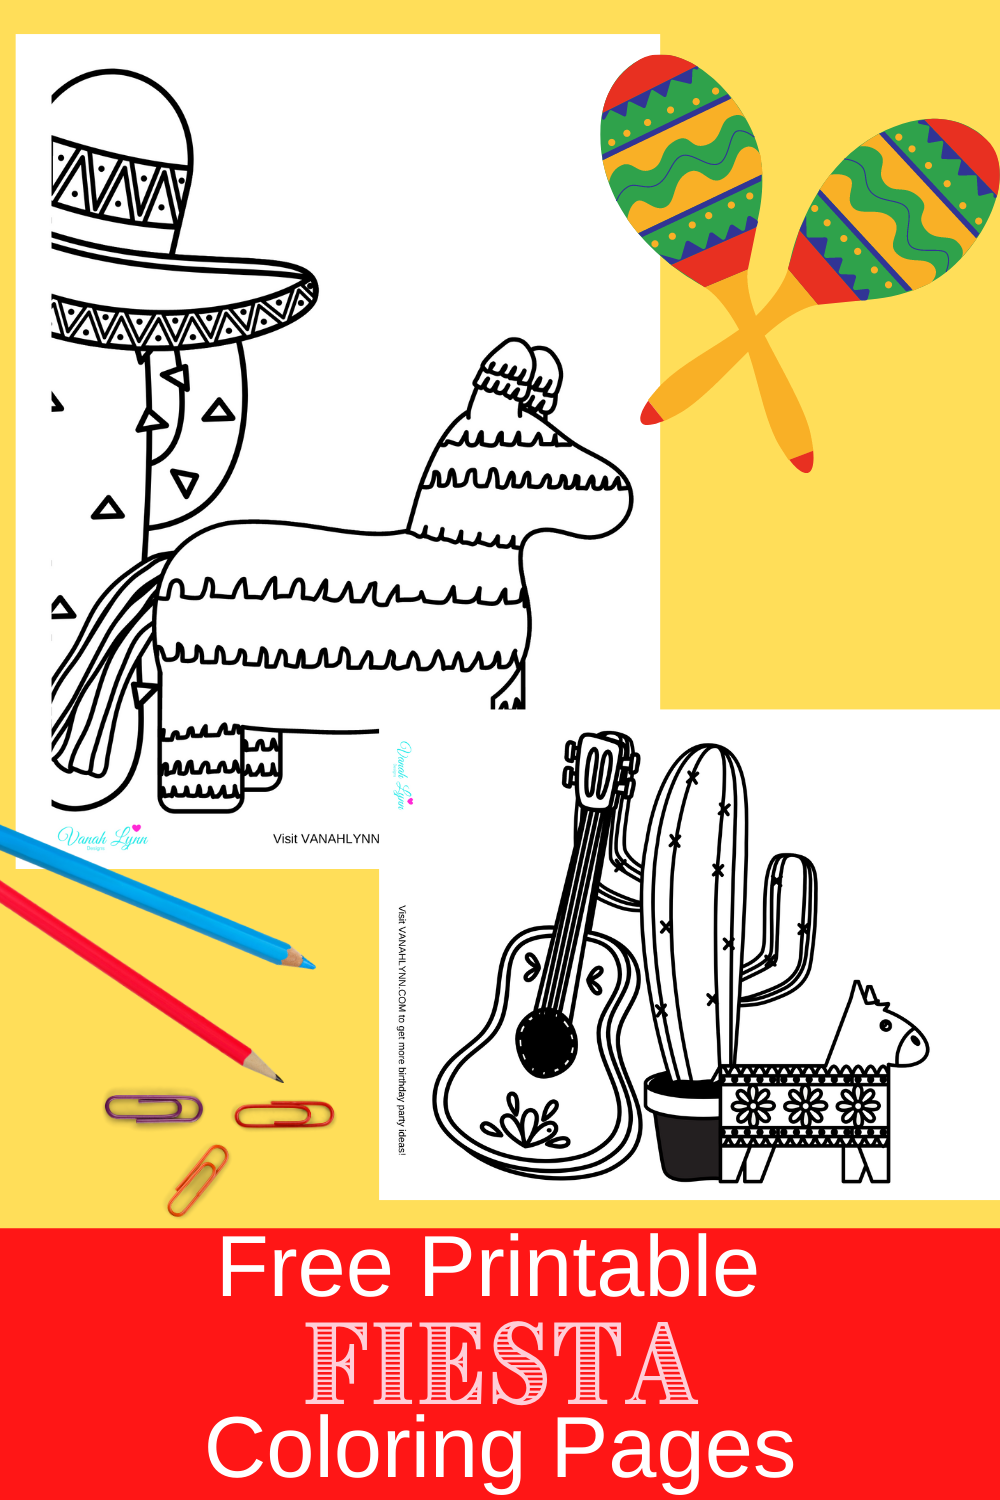 fiesta themed birthday party activities for toddlers